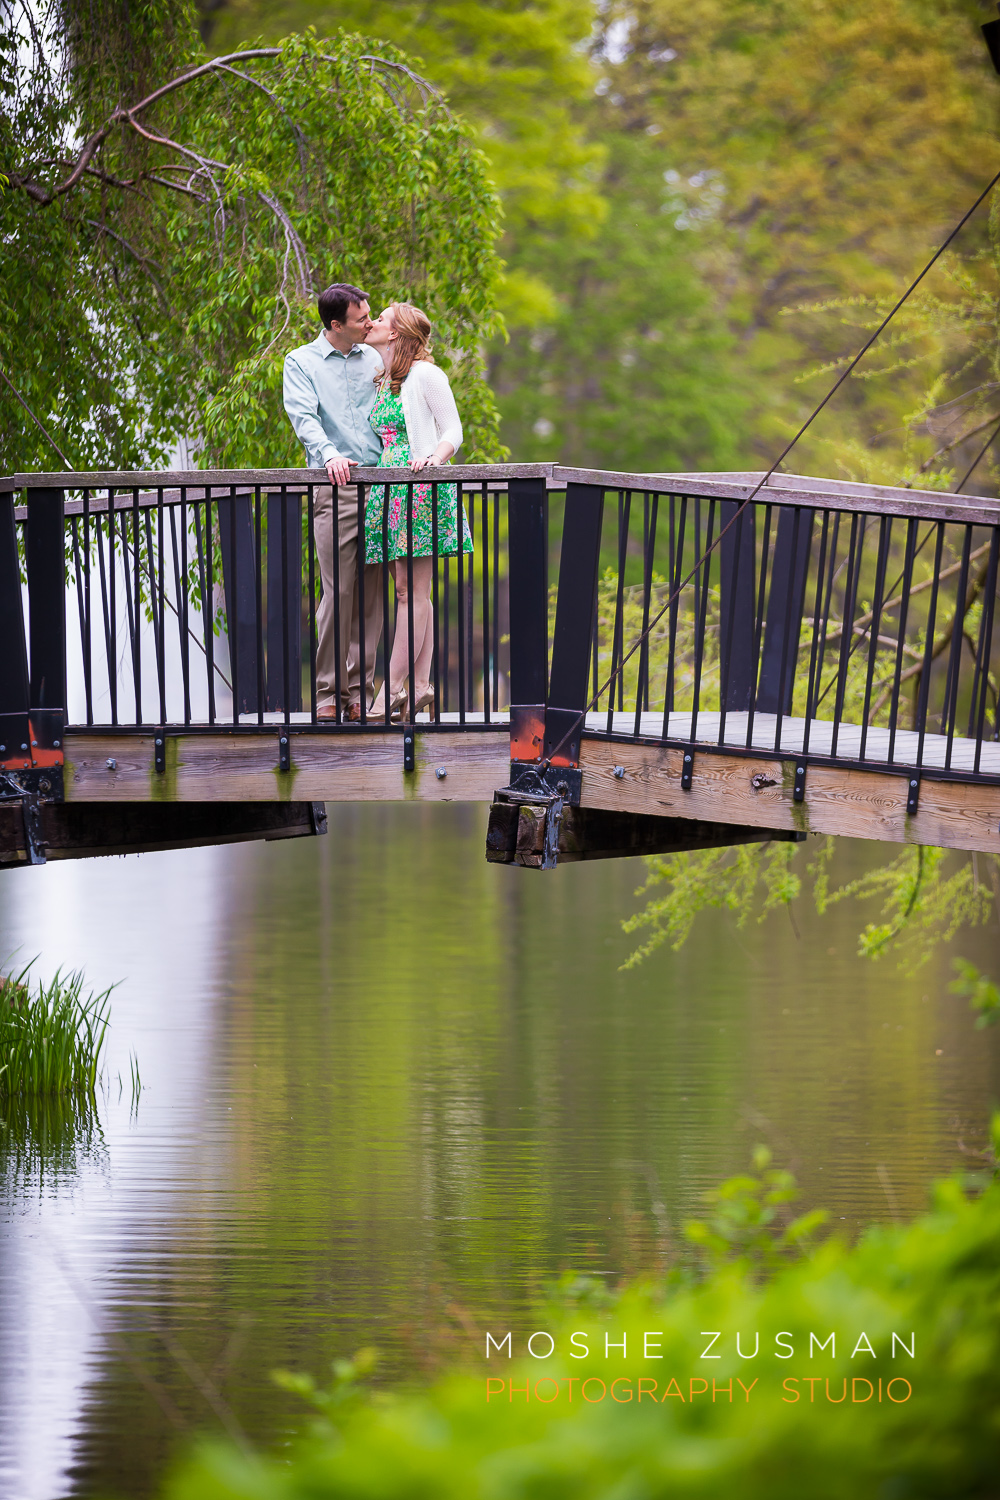 Moshe-Zusman-Engagement-Photo-Shoot-Lake-Anne-Reston-Virginia-Abby-Matt-12.jpg